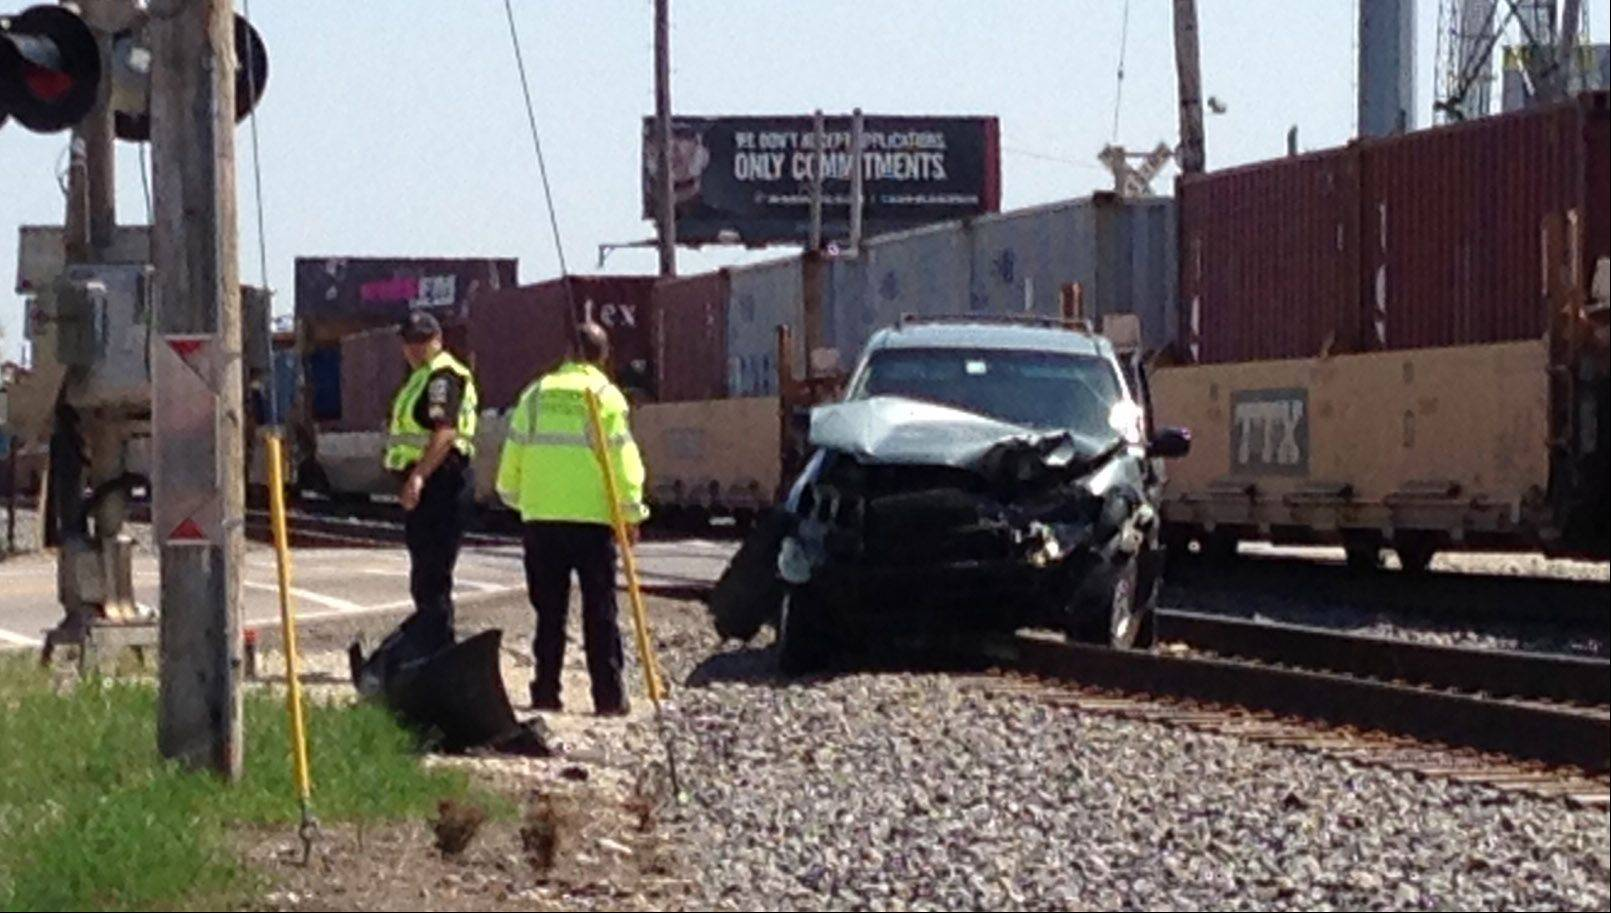 Emergency crews on the scene of a crash involving a train and an SUV at routes 83 and 137 in Grayslake Wednesday afternoon.